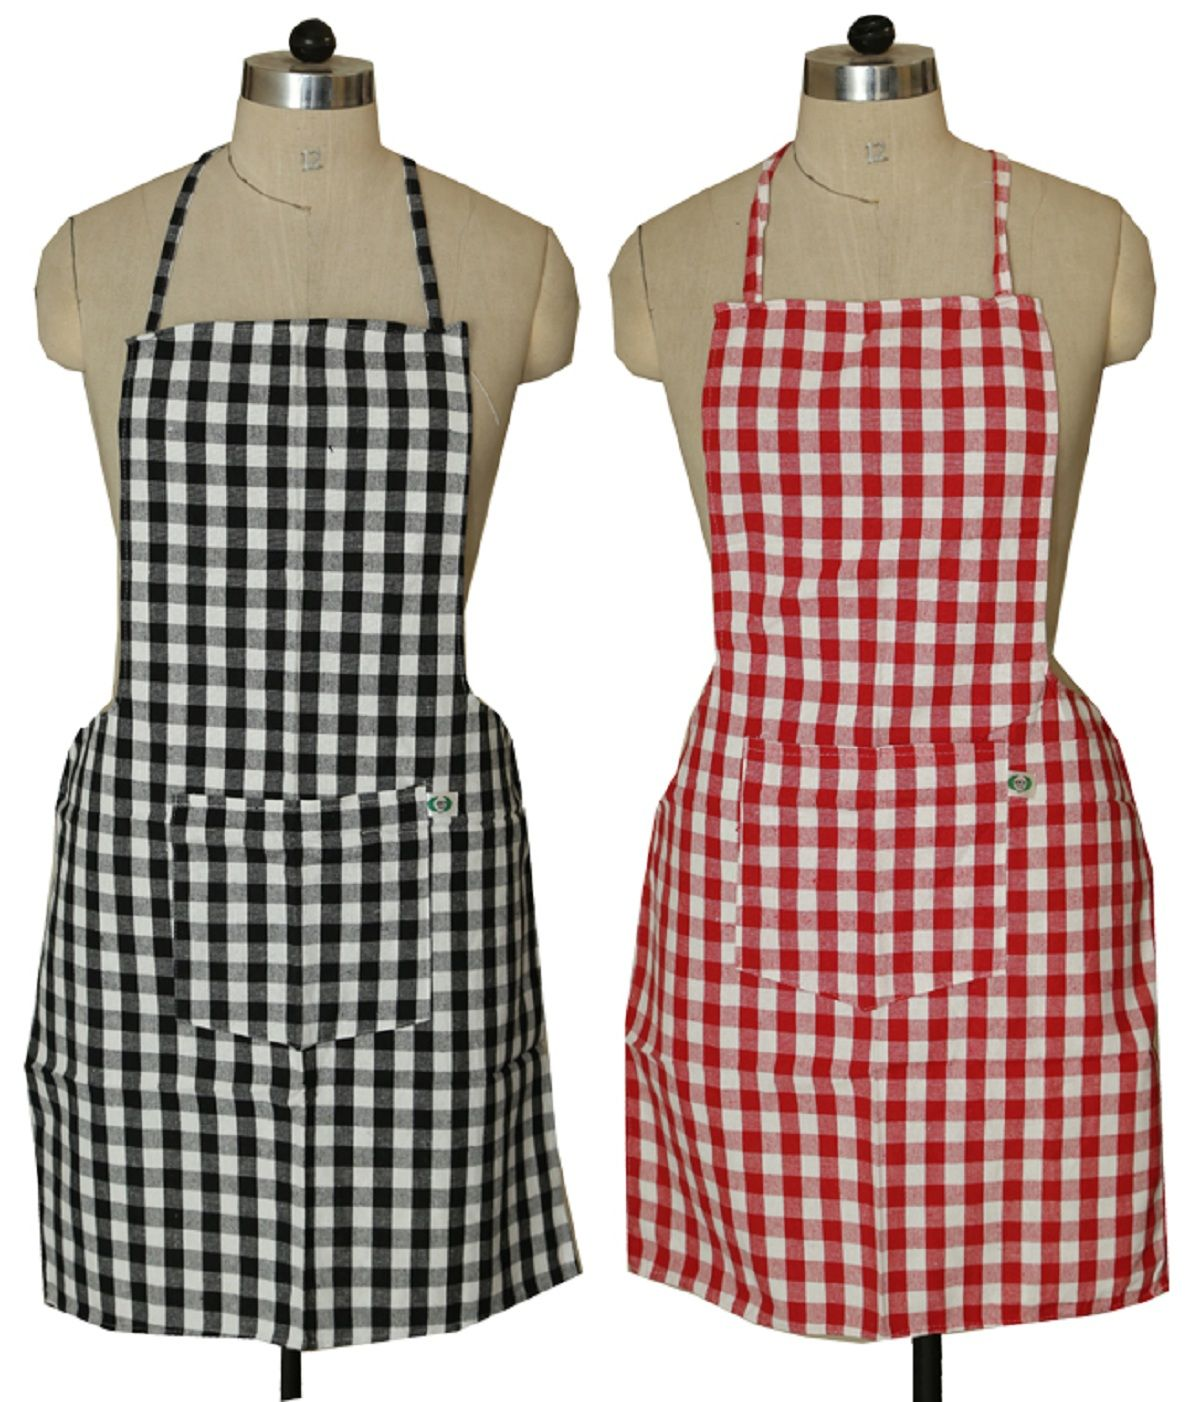 Kitchen Apron Designs Images Galleries With A Bite